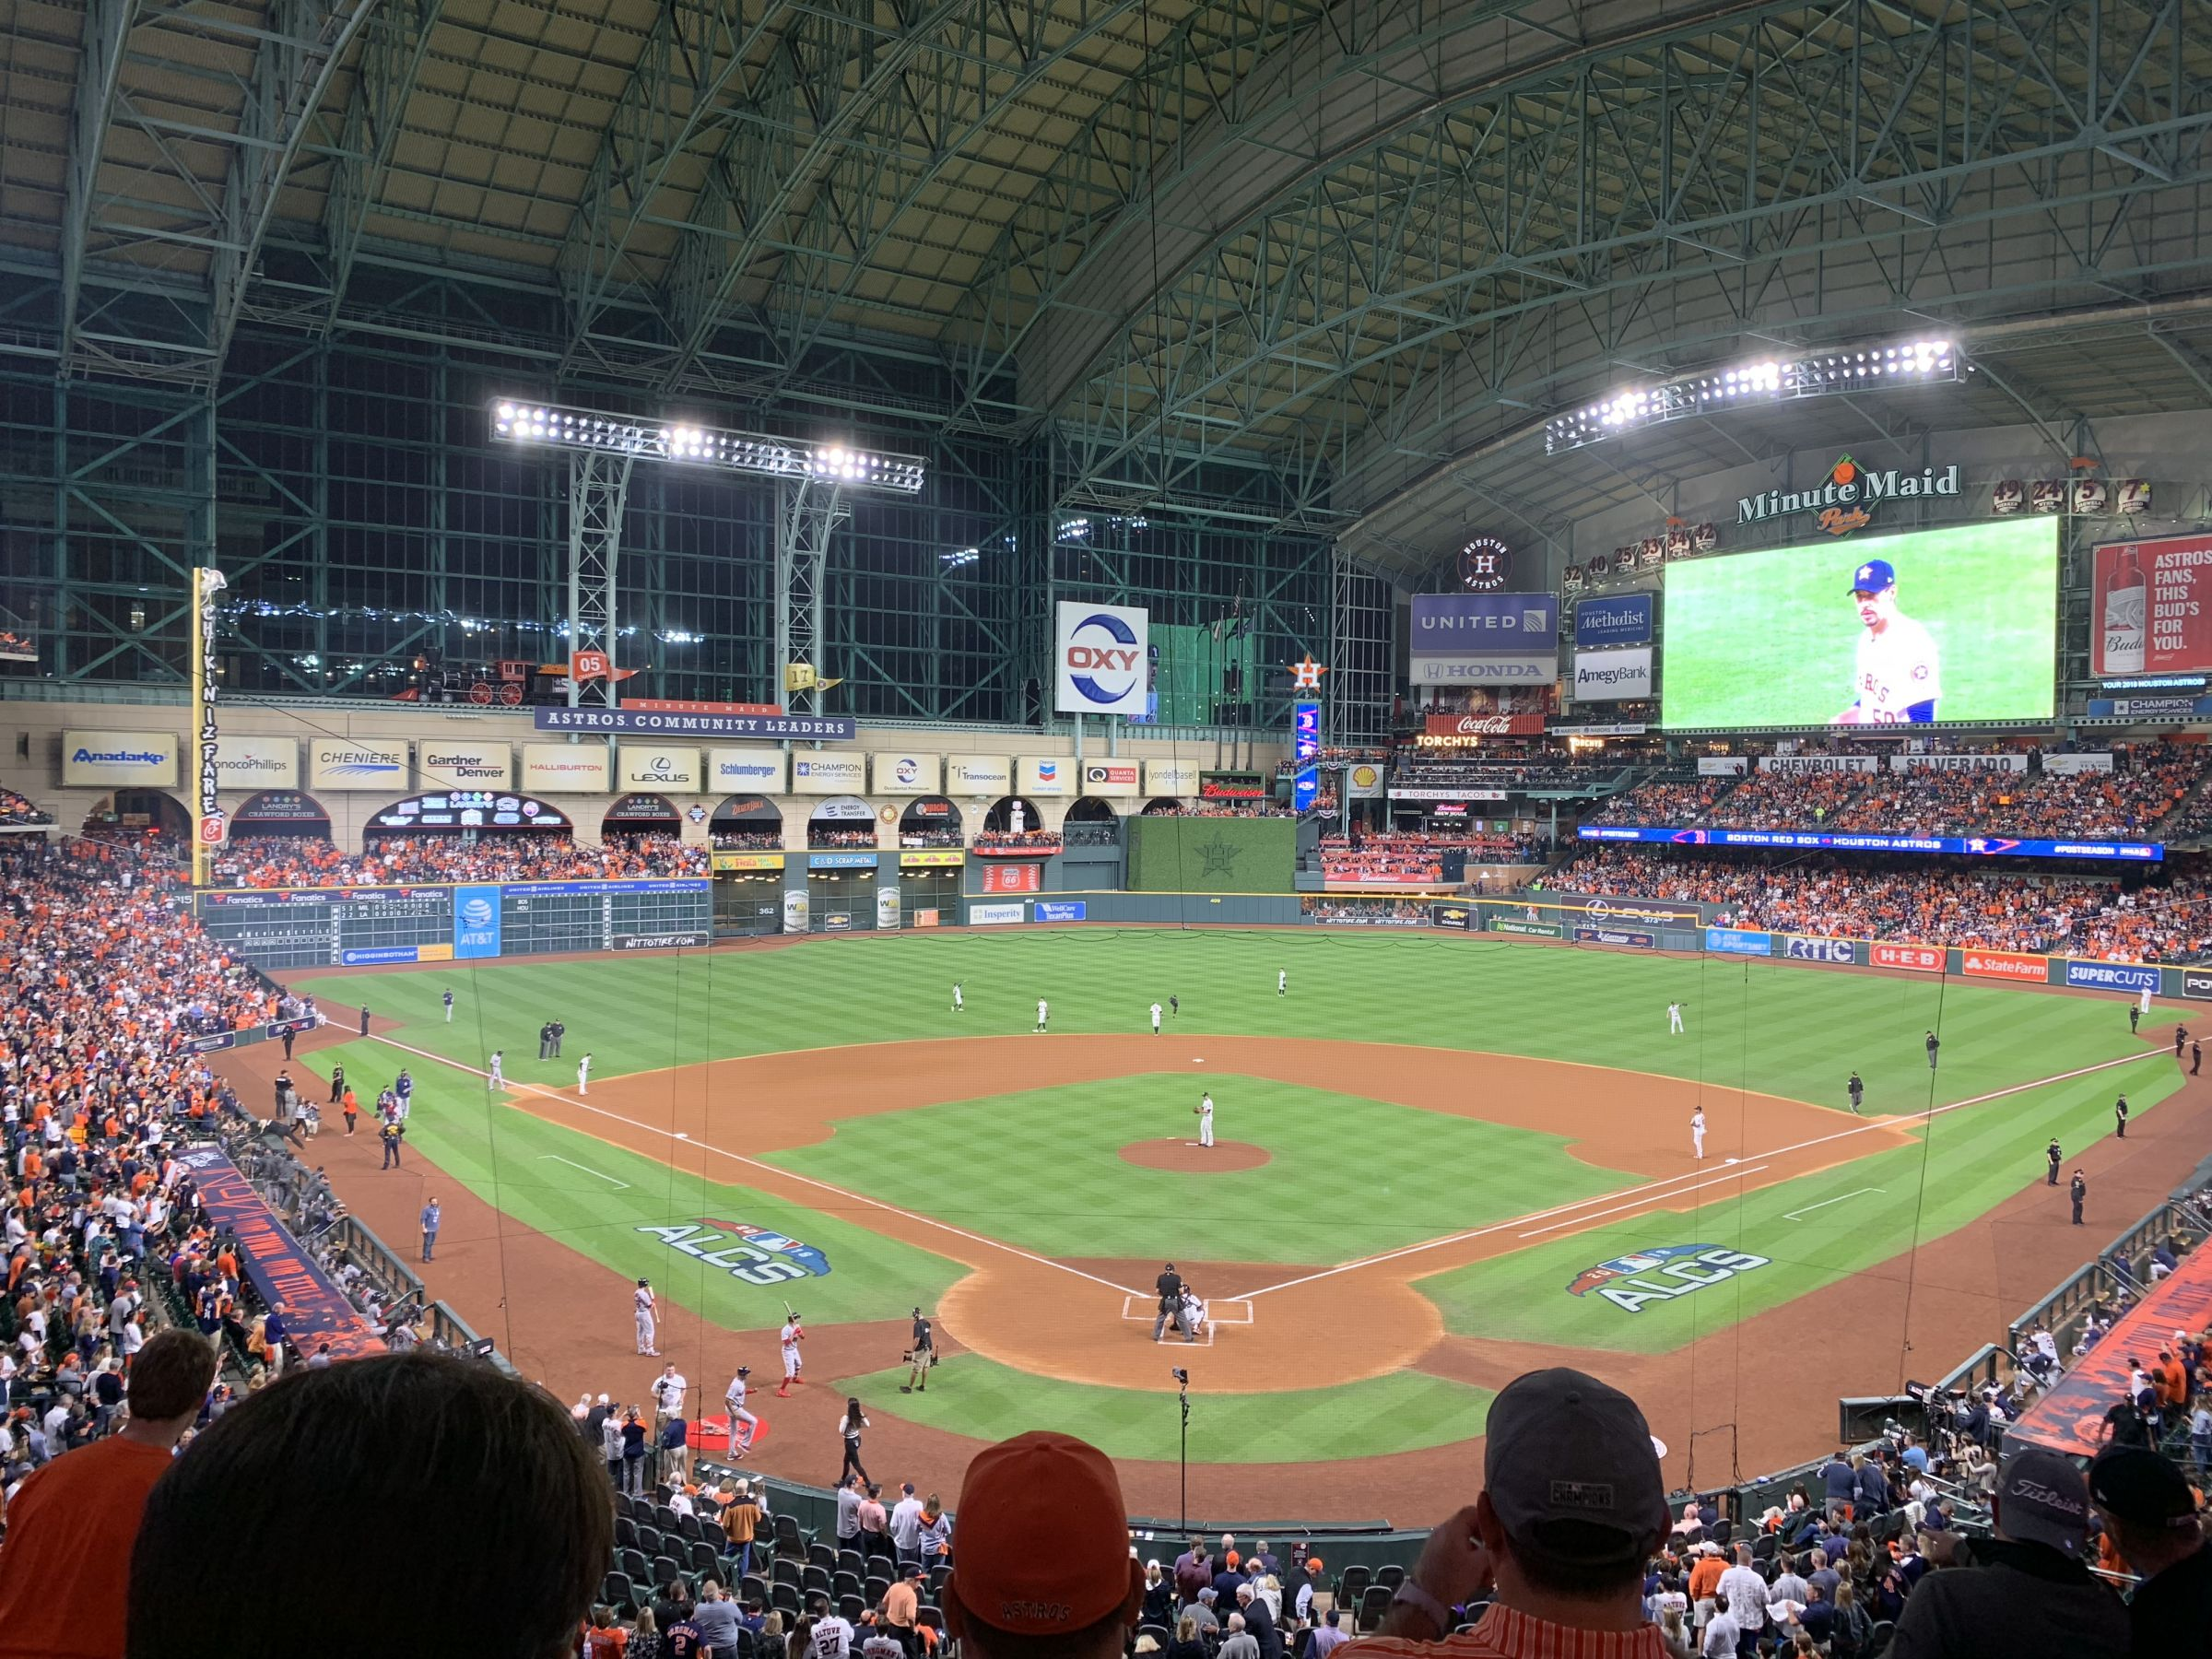 Seat View for Minute Maid Park Section 219, Row 5, Seat 8